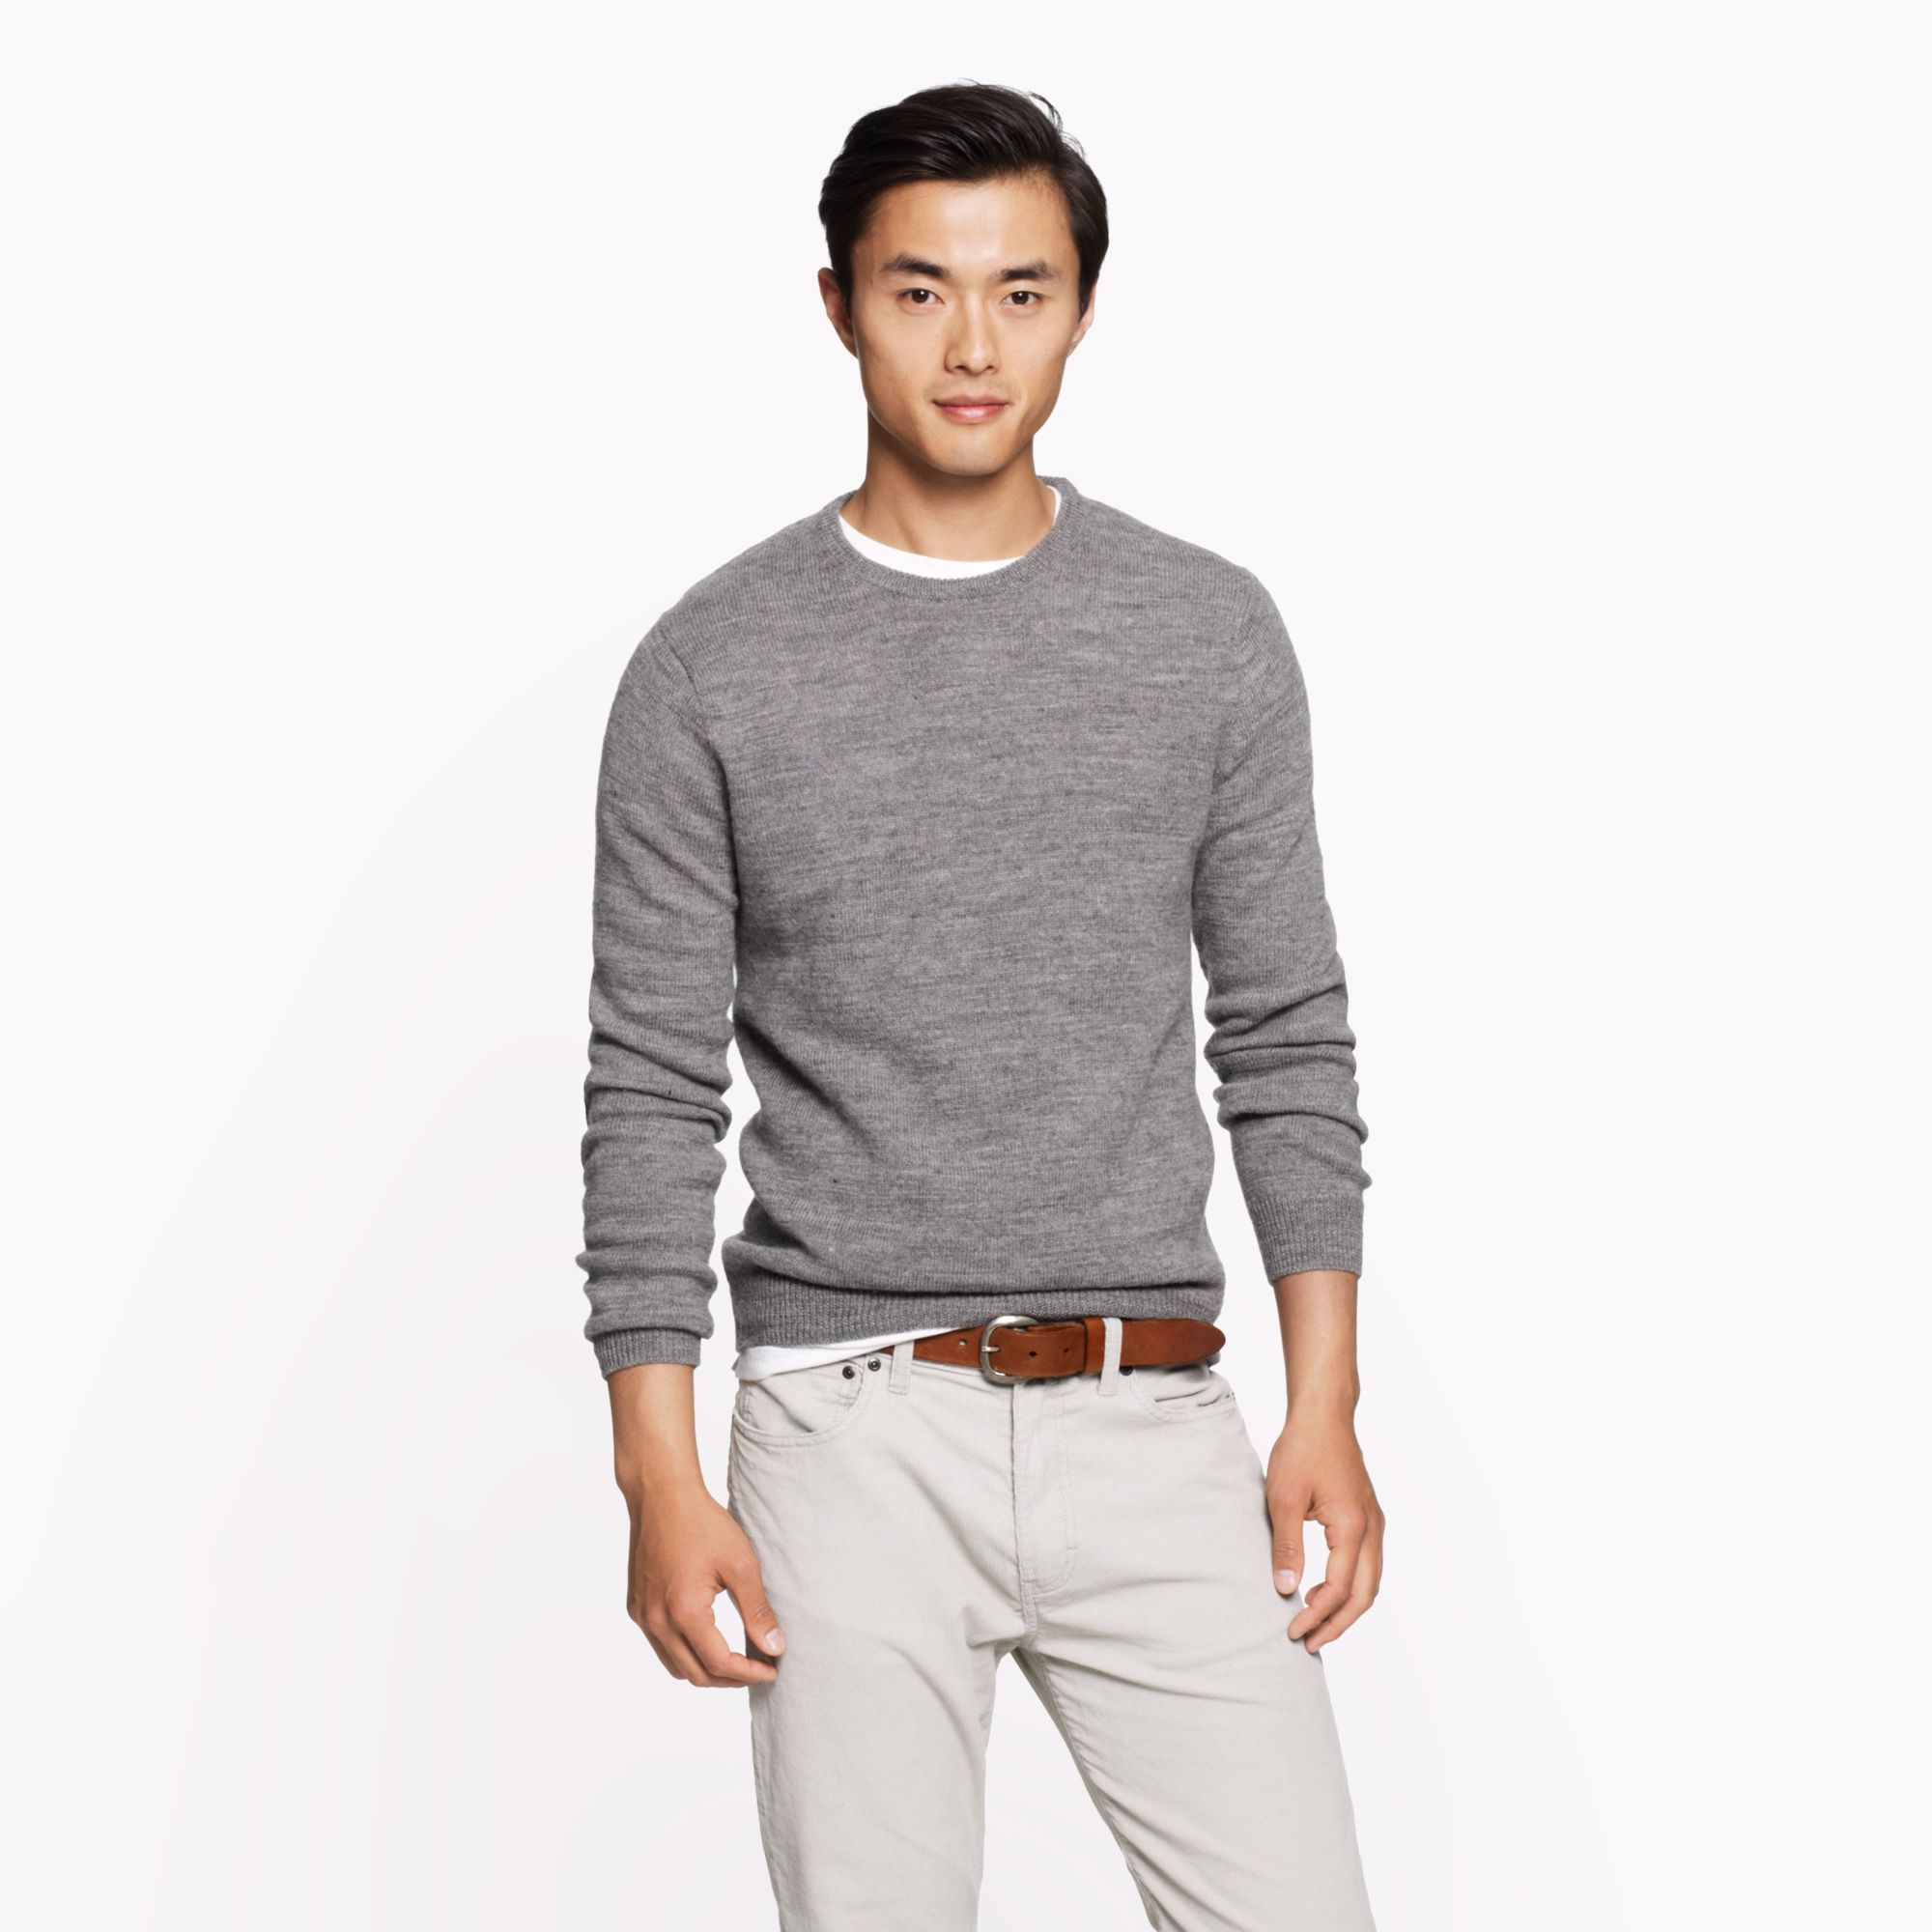 j crew rustic merino patch sweater in gray for